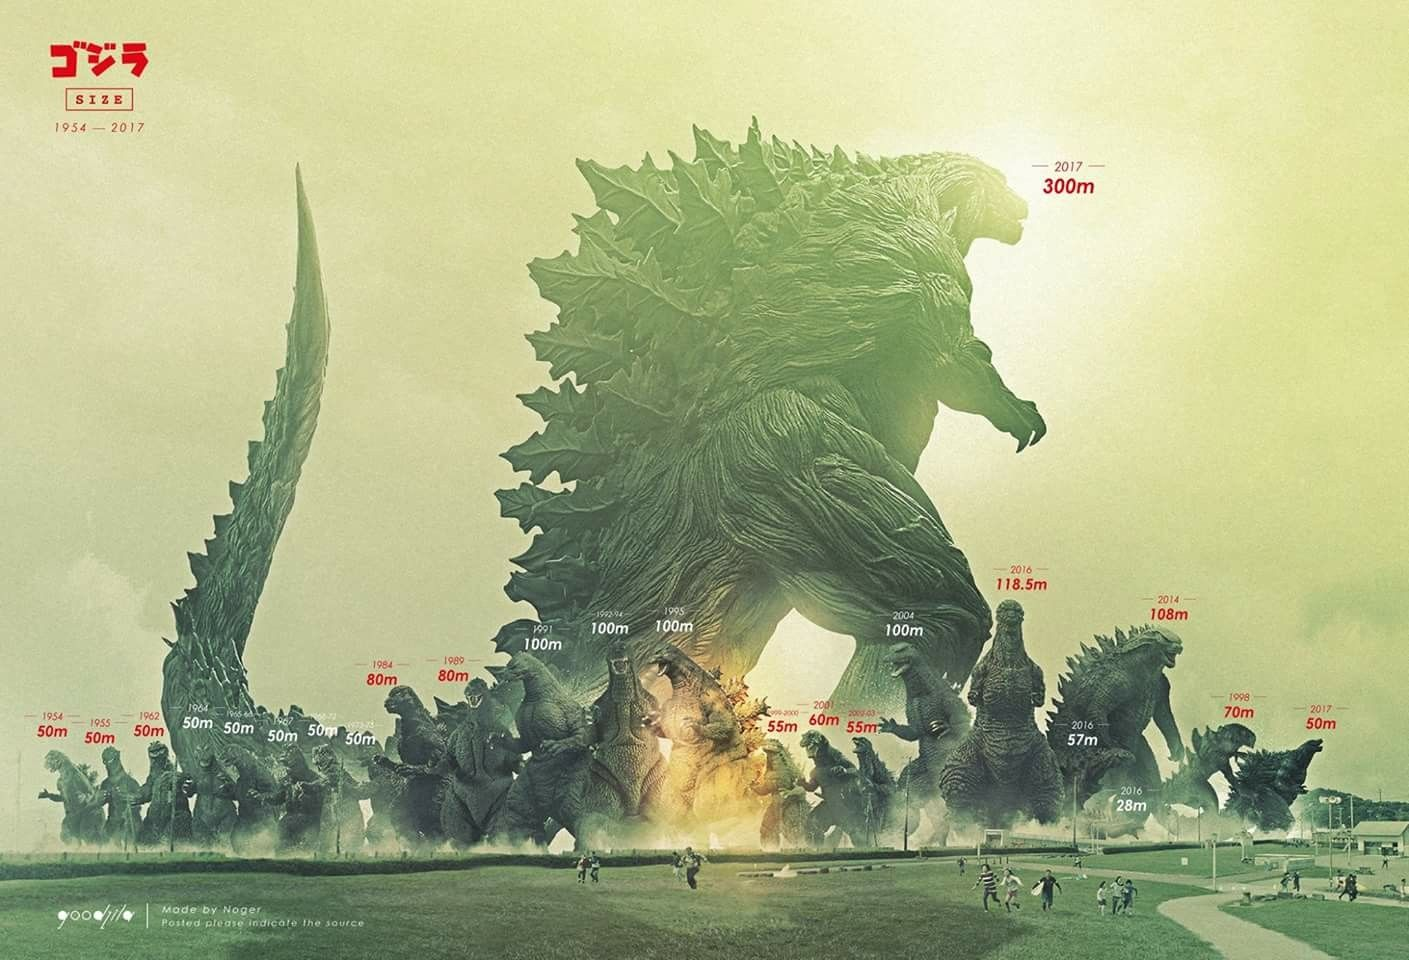 Pin by Jeffrey Girard on Godzilla | Pinterest | Godzilla